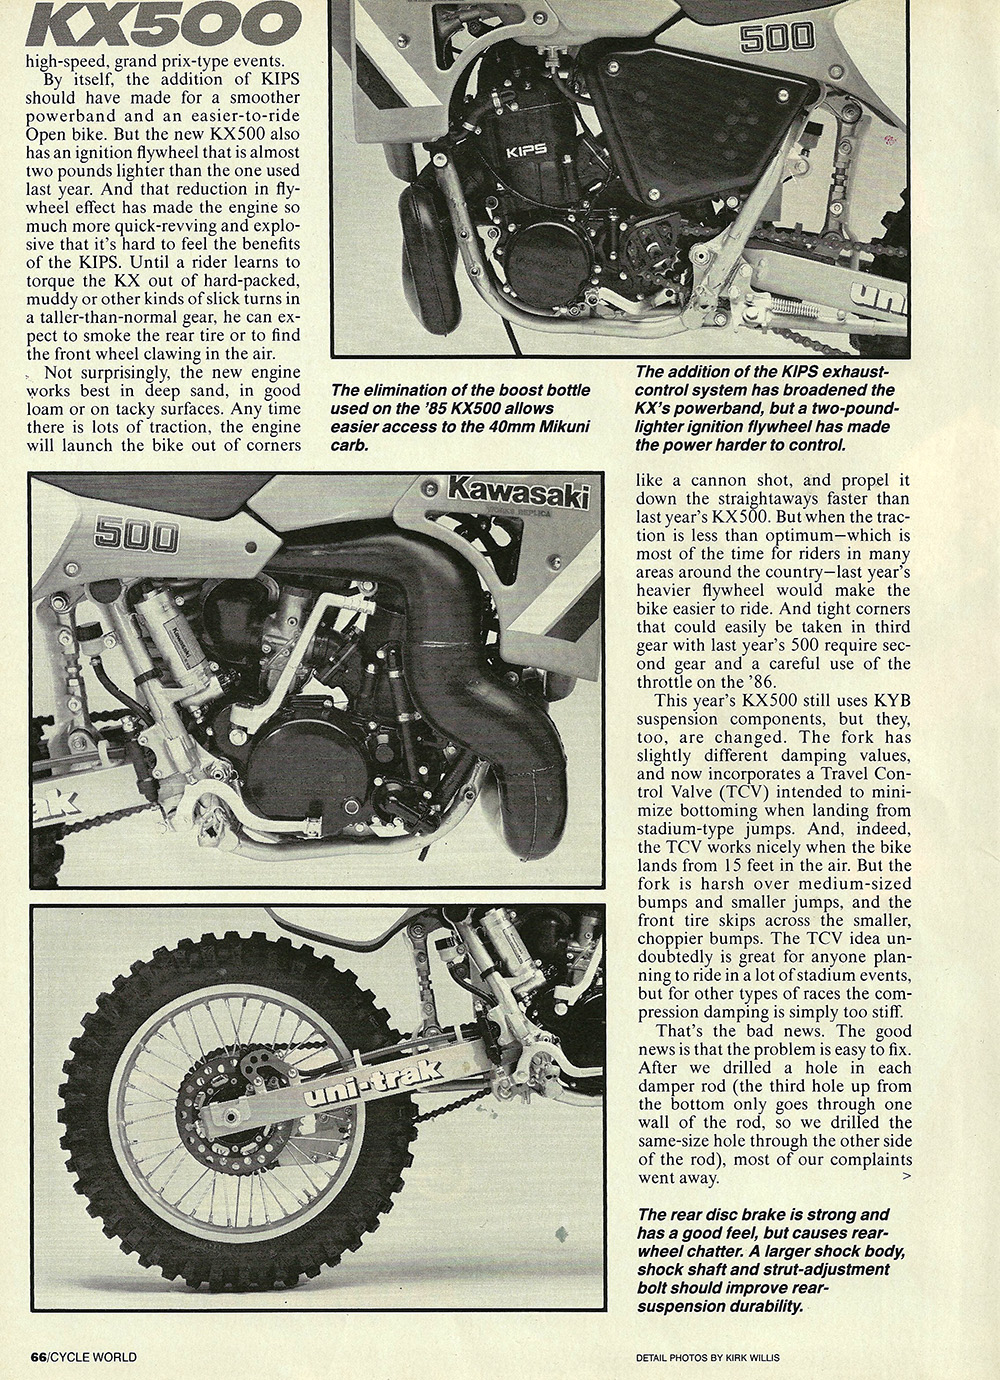 1986 Kawasaki KX500 road test 03.jpg